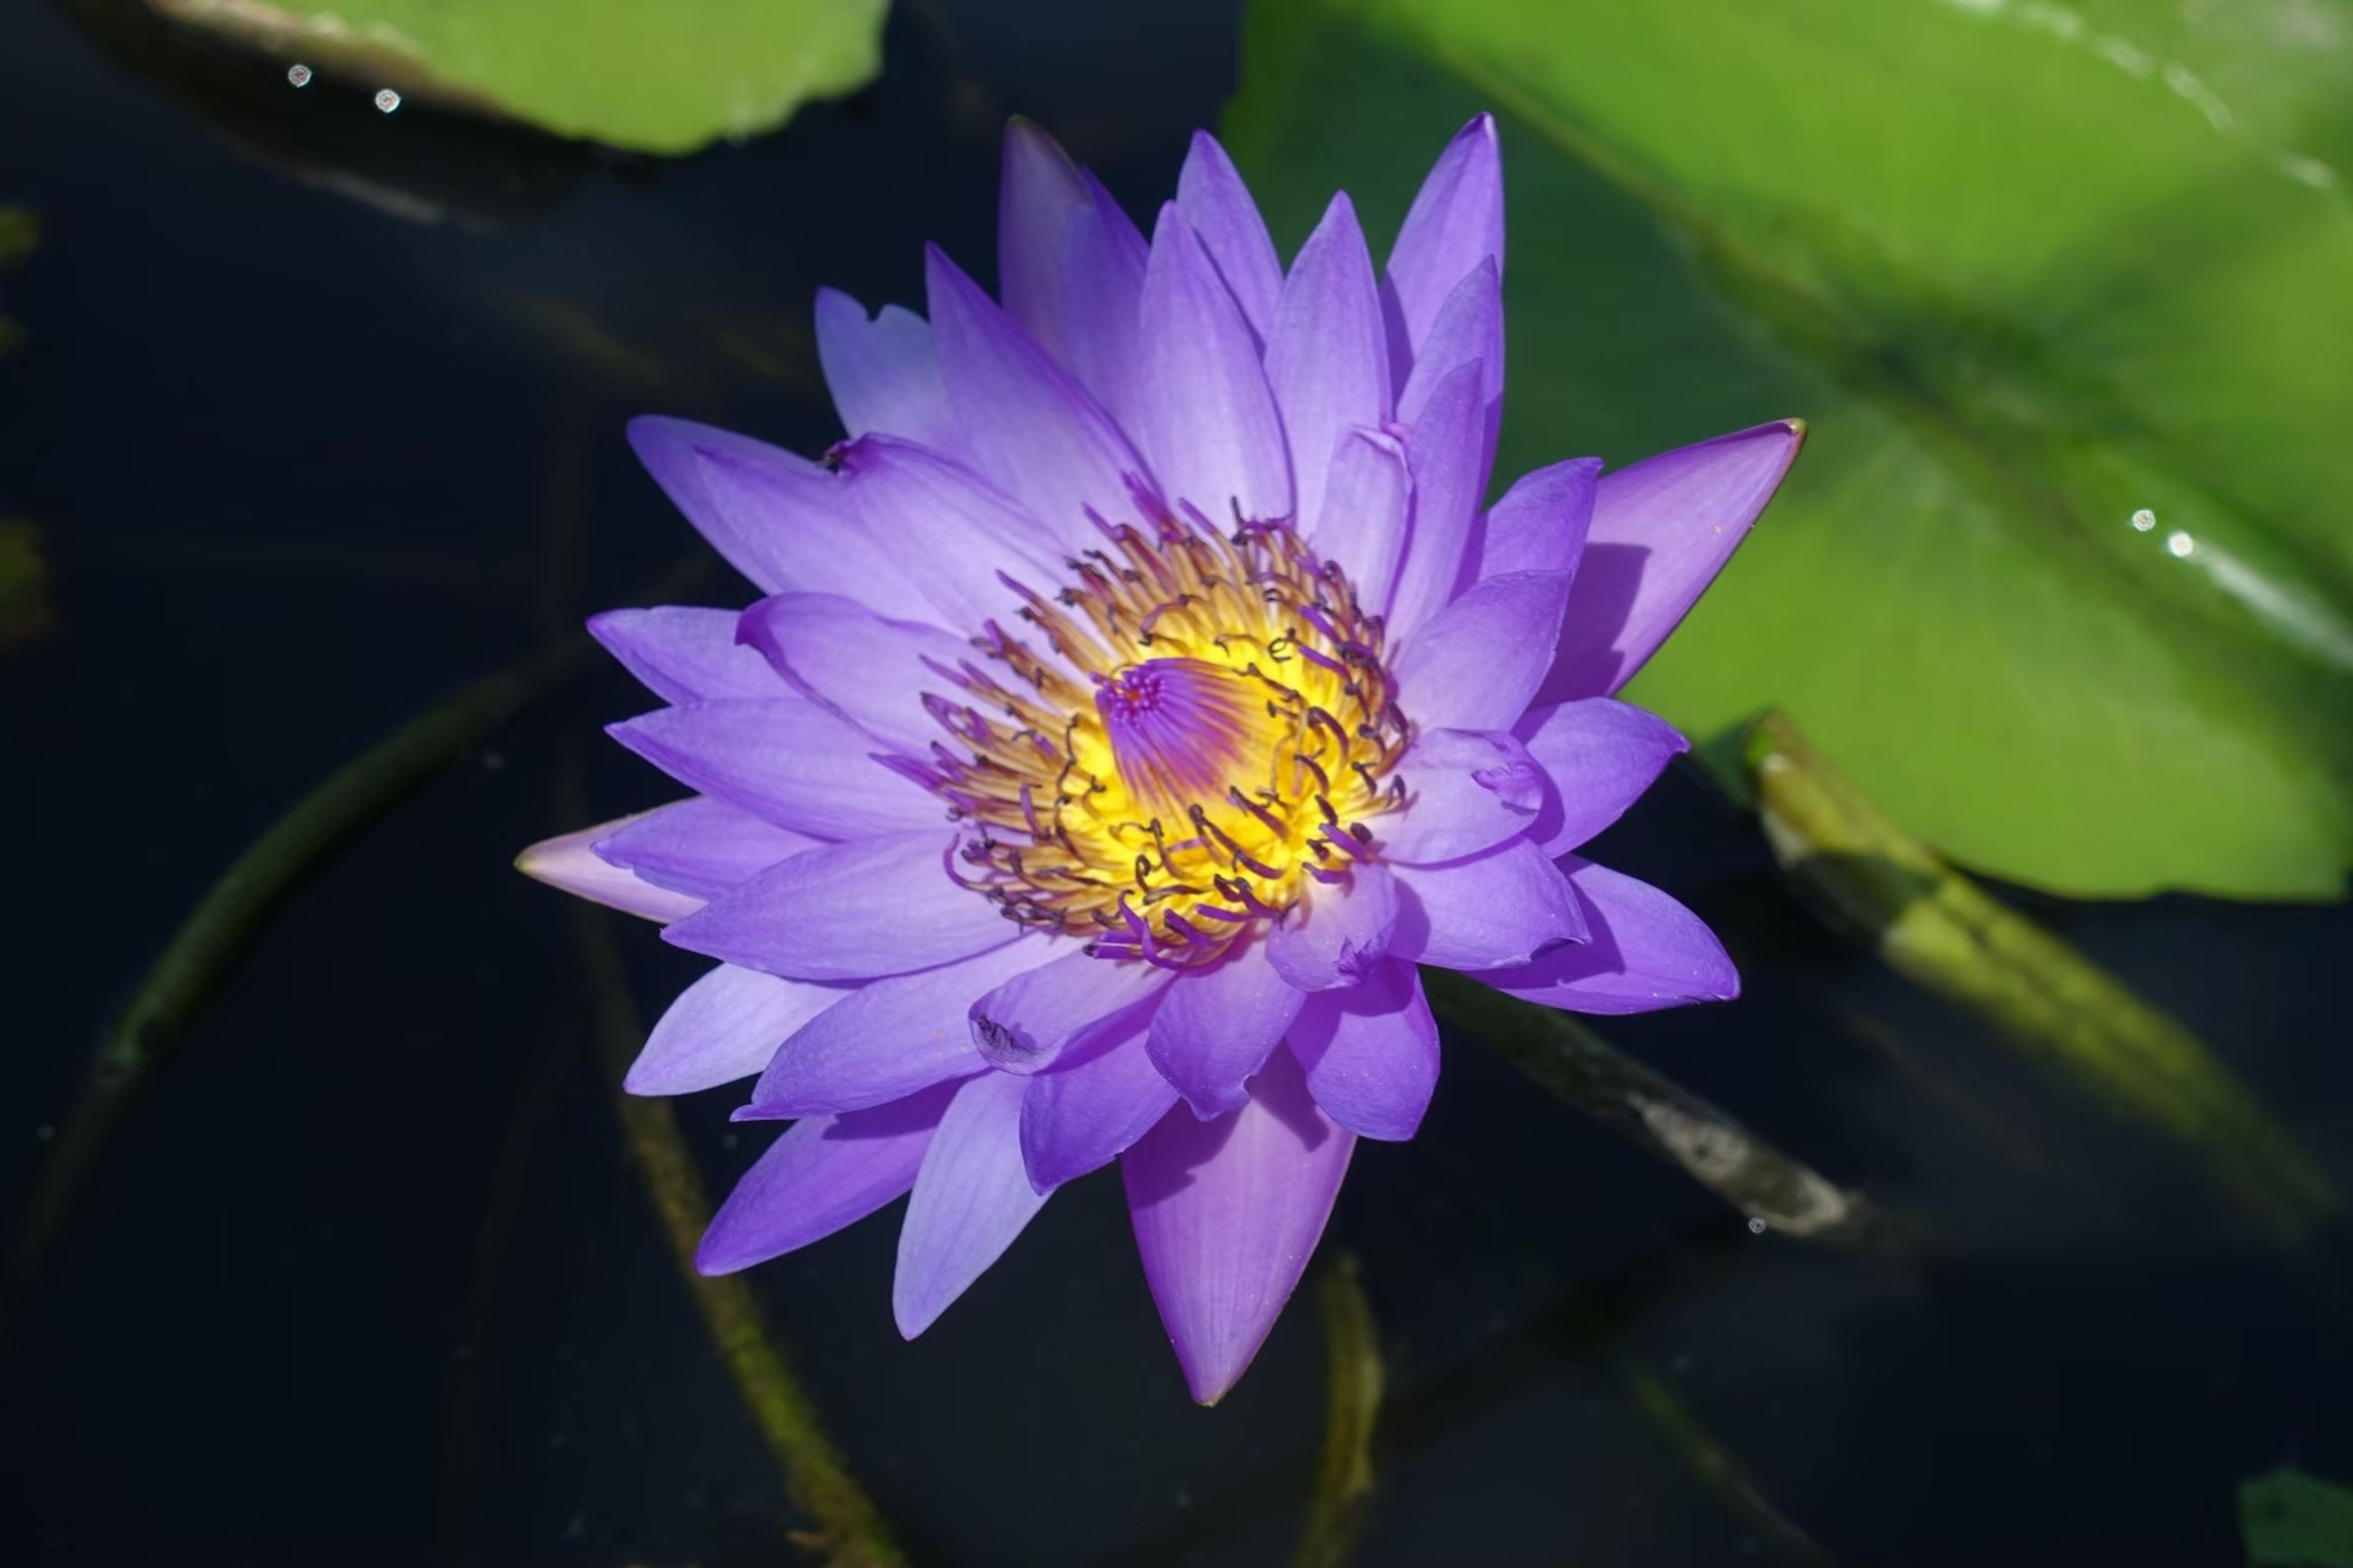 flower, flowering plant, plant, petal, fragility, vulnerability, flower head, freshness, inflorescence, beauty in nature, growth, close-up, pollen, water lily, nature, purple, leaf, plant part, no people, pollination, lotus water lily, floating on water